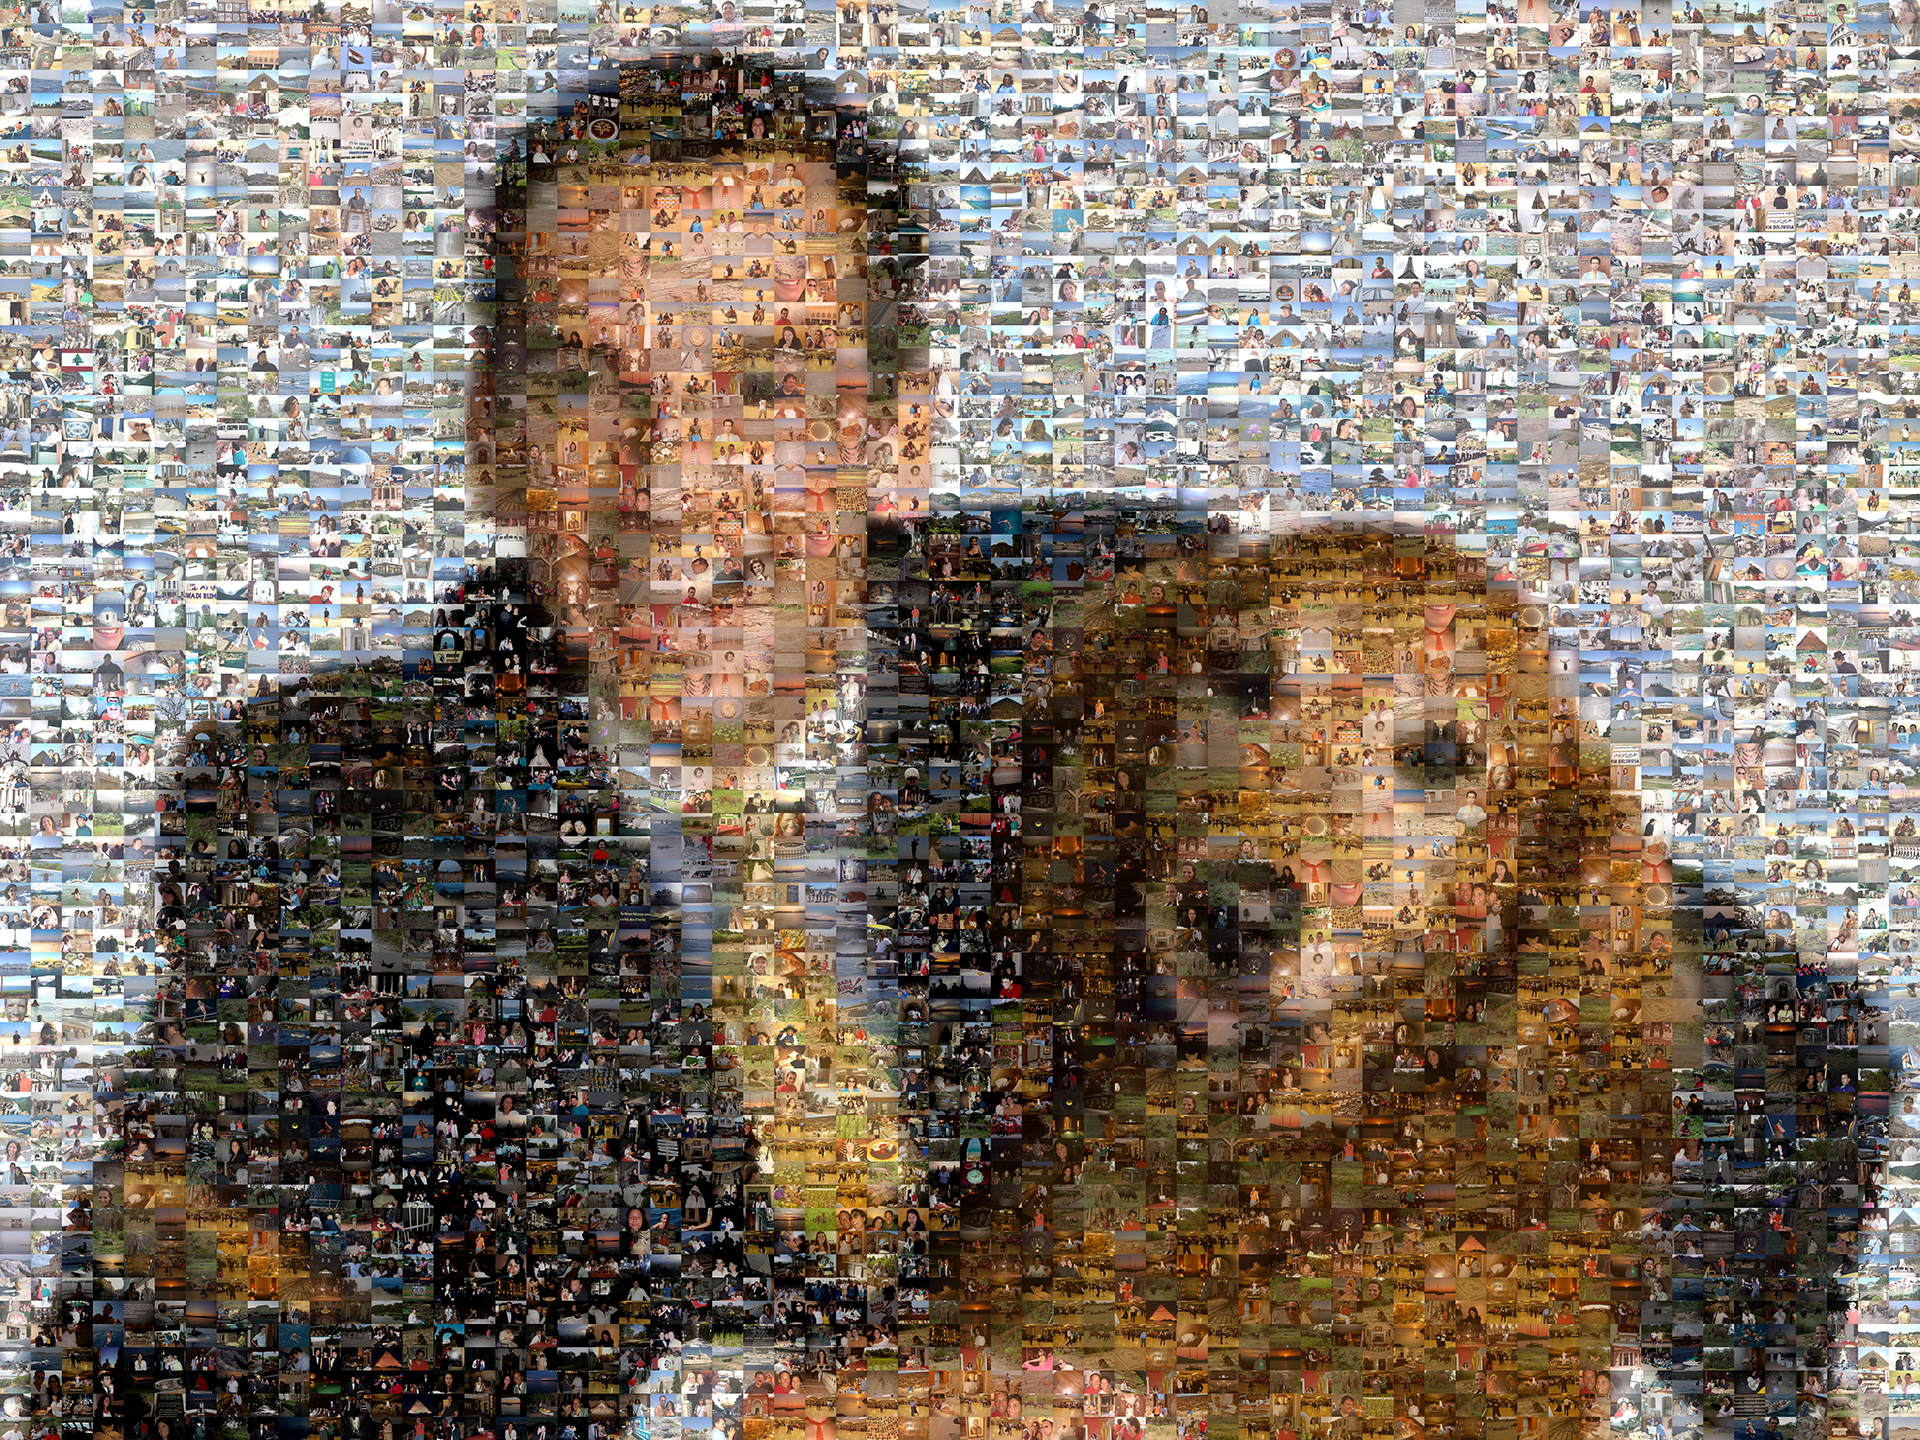 photo mosaic Man's best friend using over 3000 photos from his travels